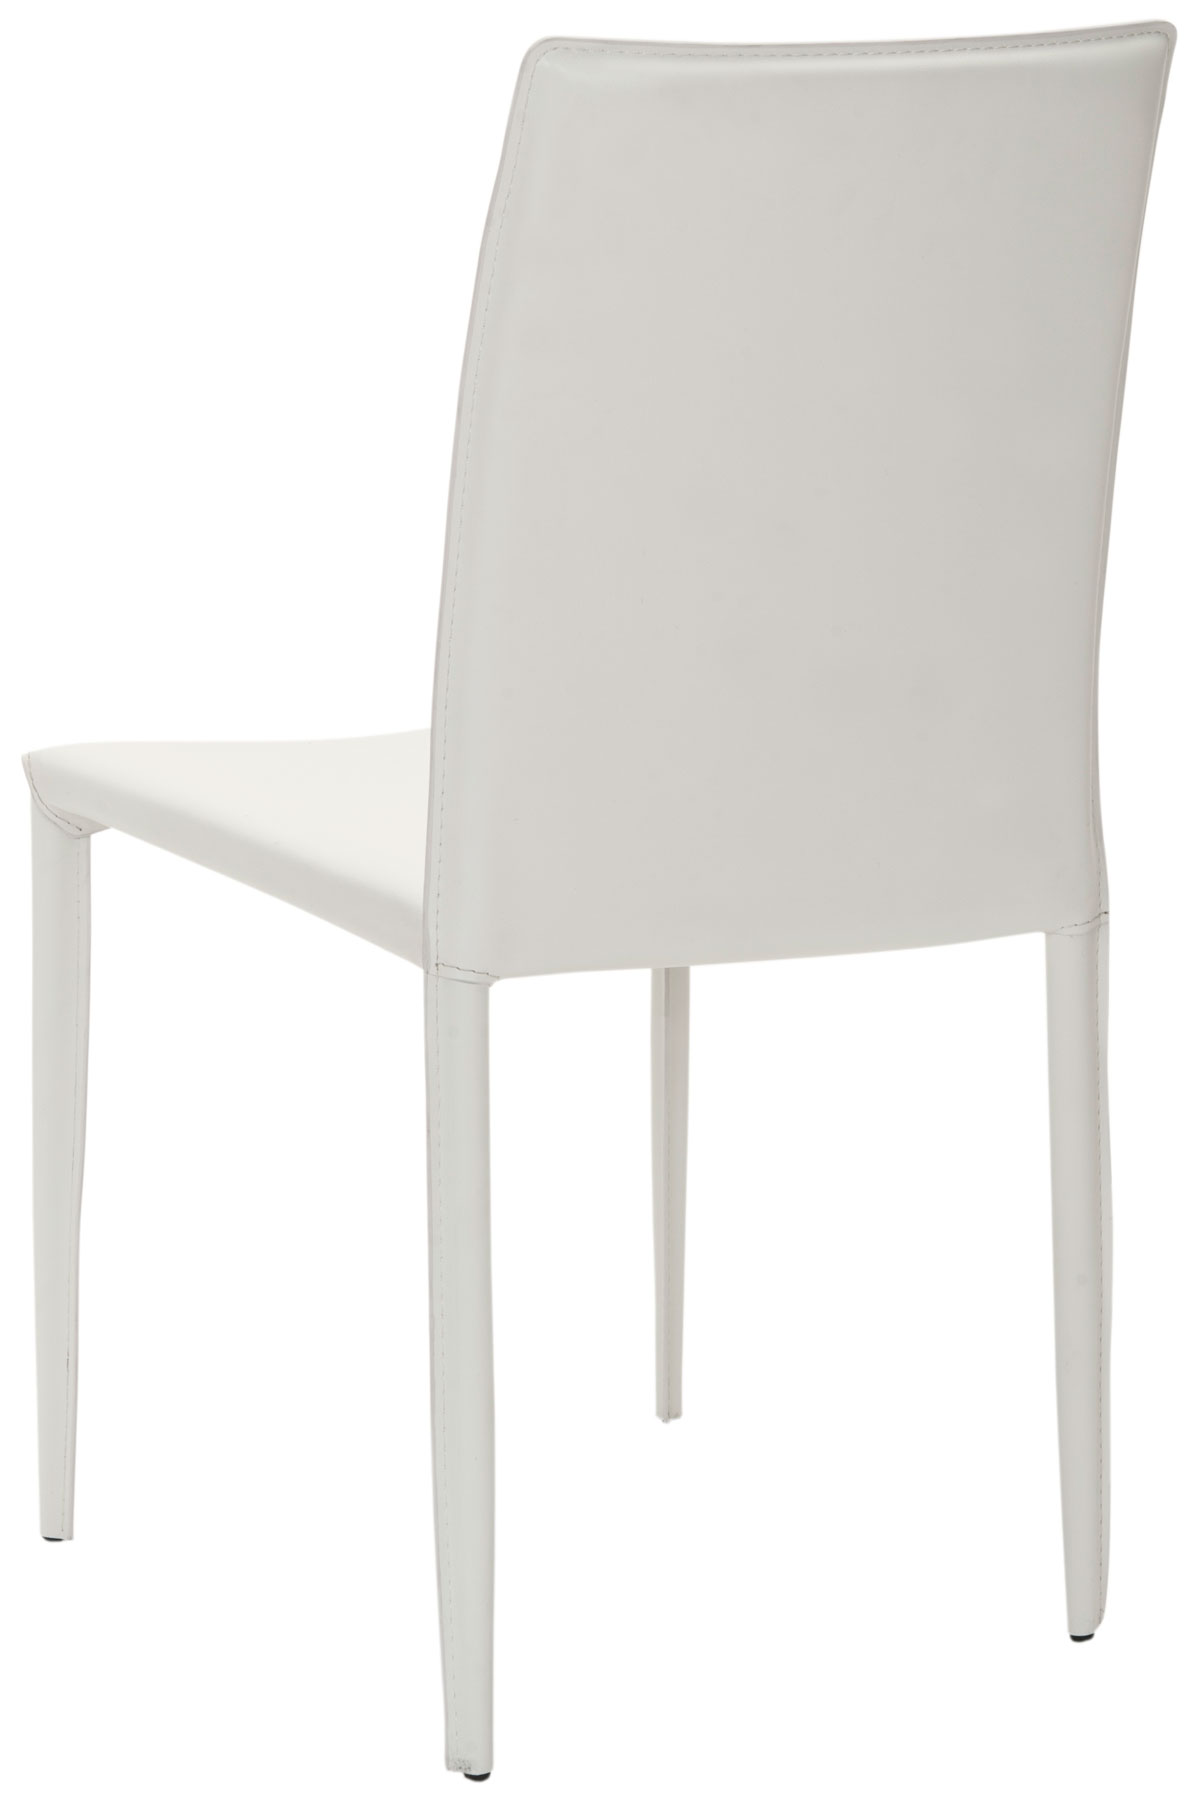 safavieh karna dining chair small ball fox2009a set2 chairs furniture by